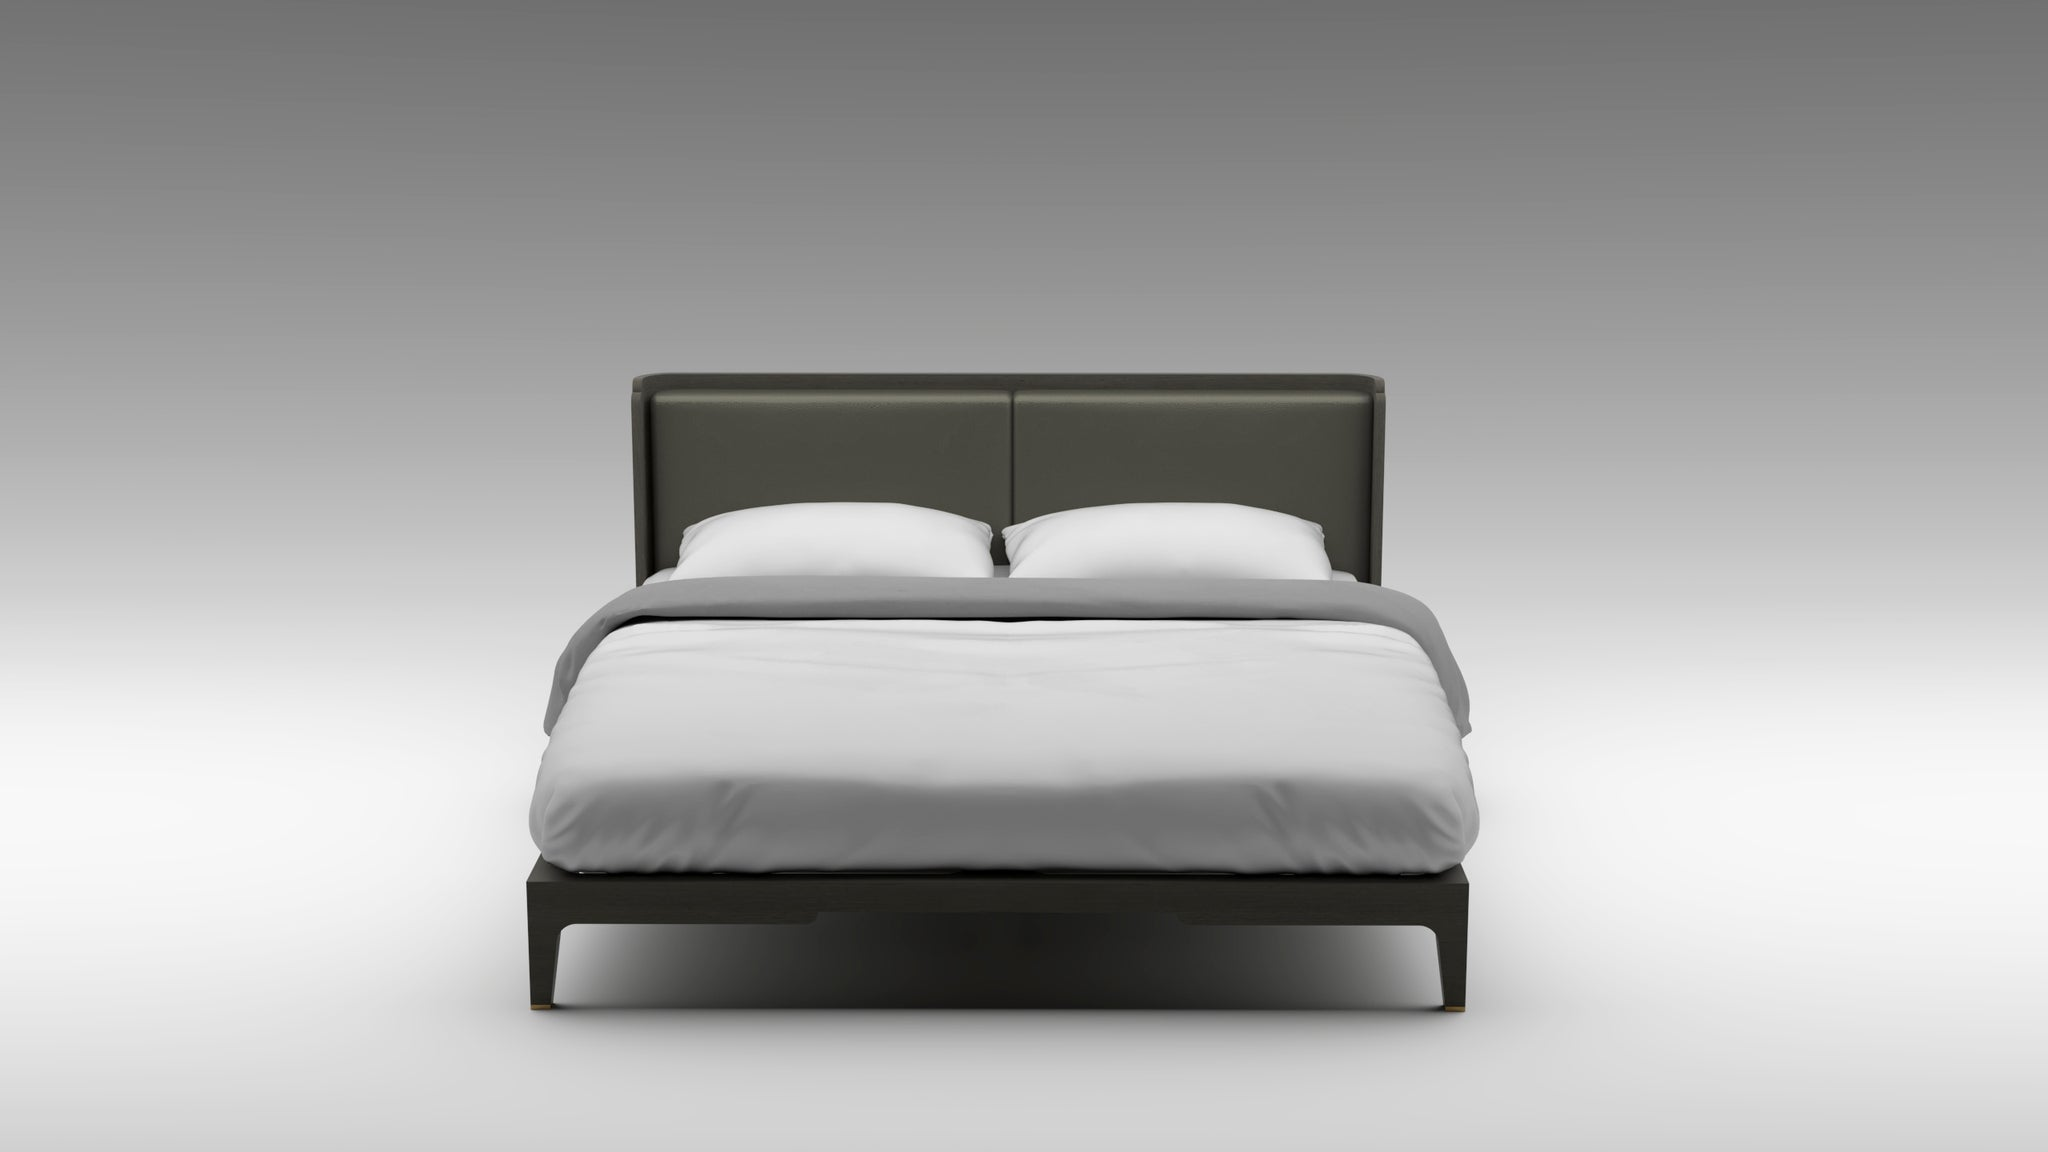 Double Clay Guimar bed, simplistic bed frame, grained leather headboard, designer bed frame, guimar bed, akar bed,